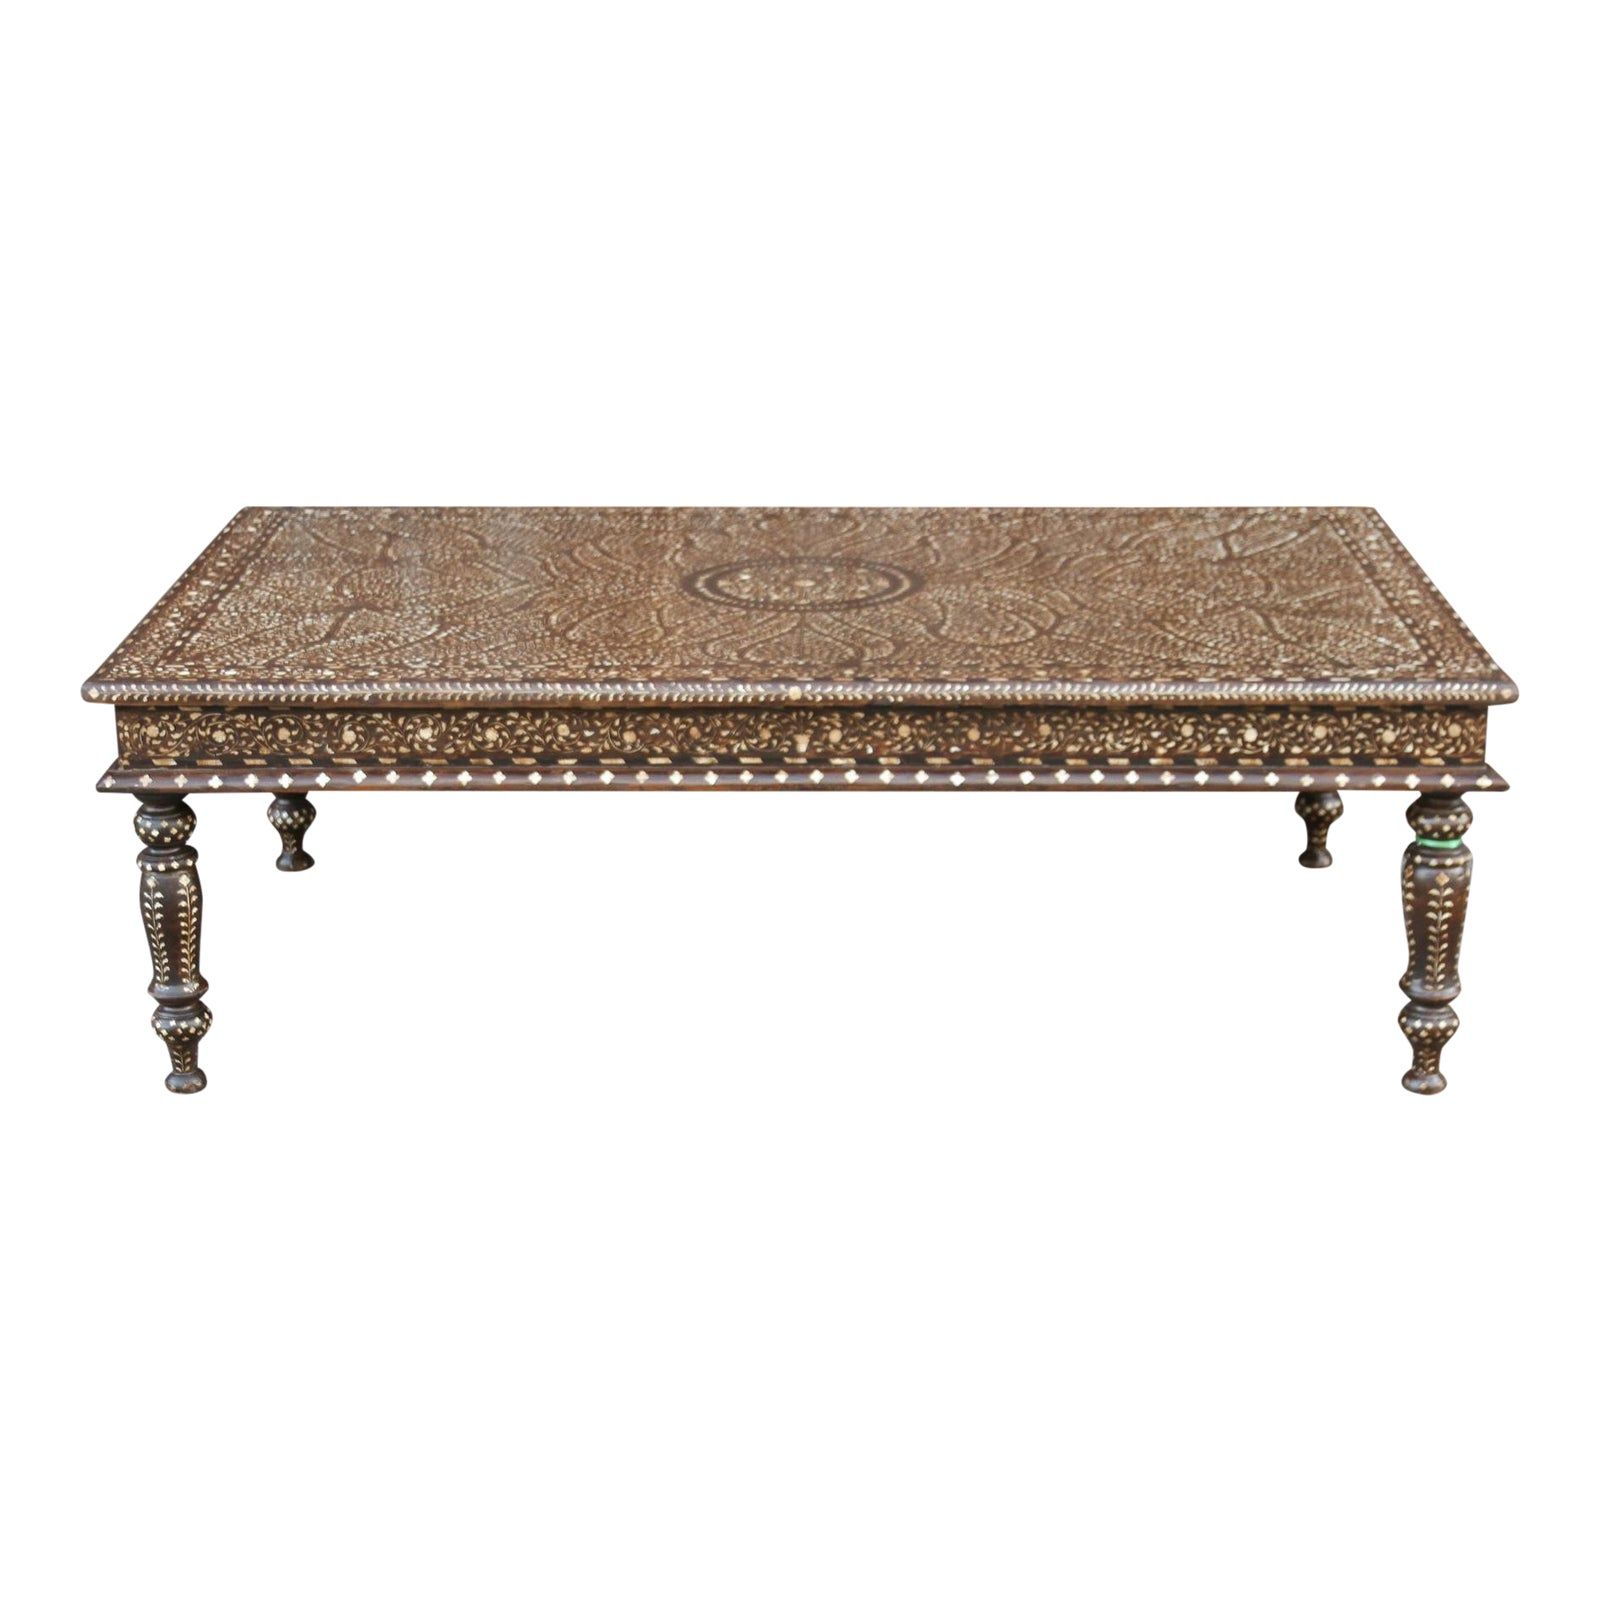 Strange Royal Anglo Indian Bone Inlay Large Coffee Table Dailytribune Chair Design For Home Dailytribuneorg